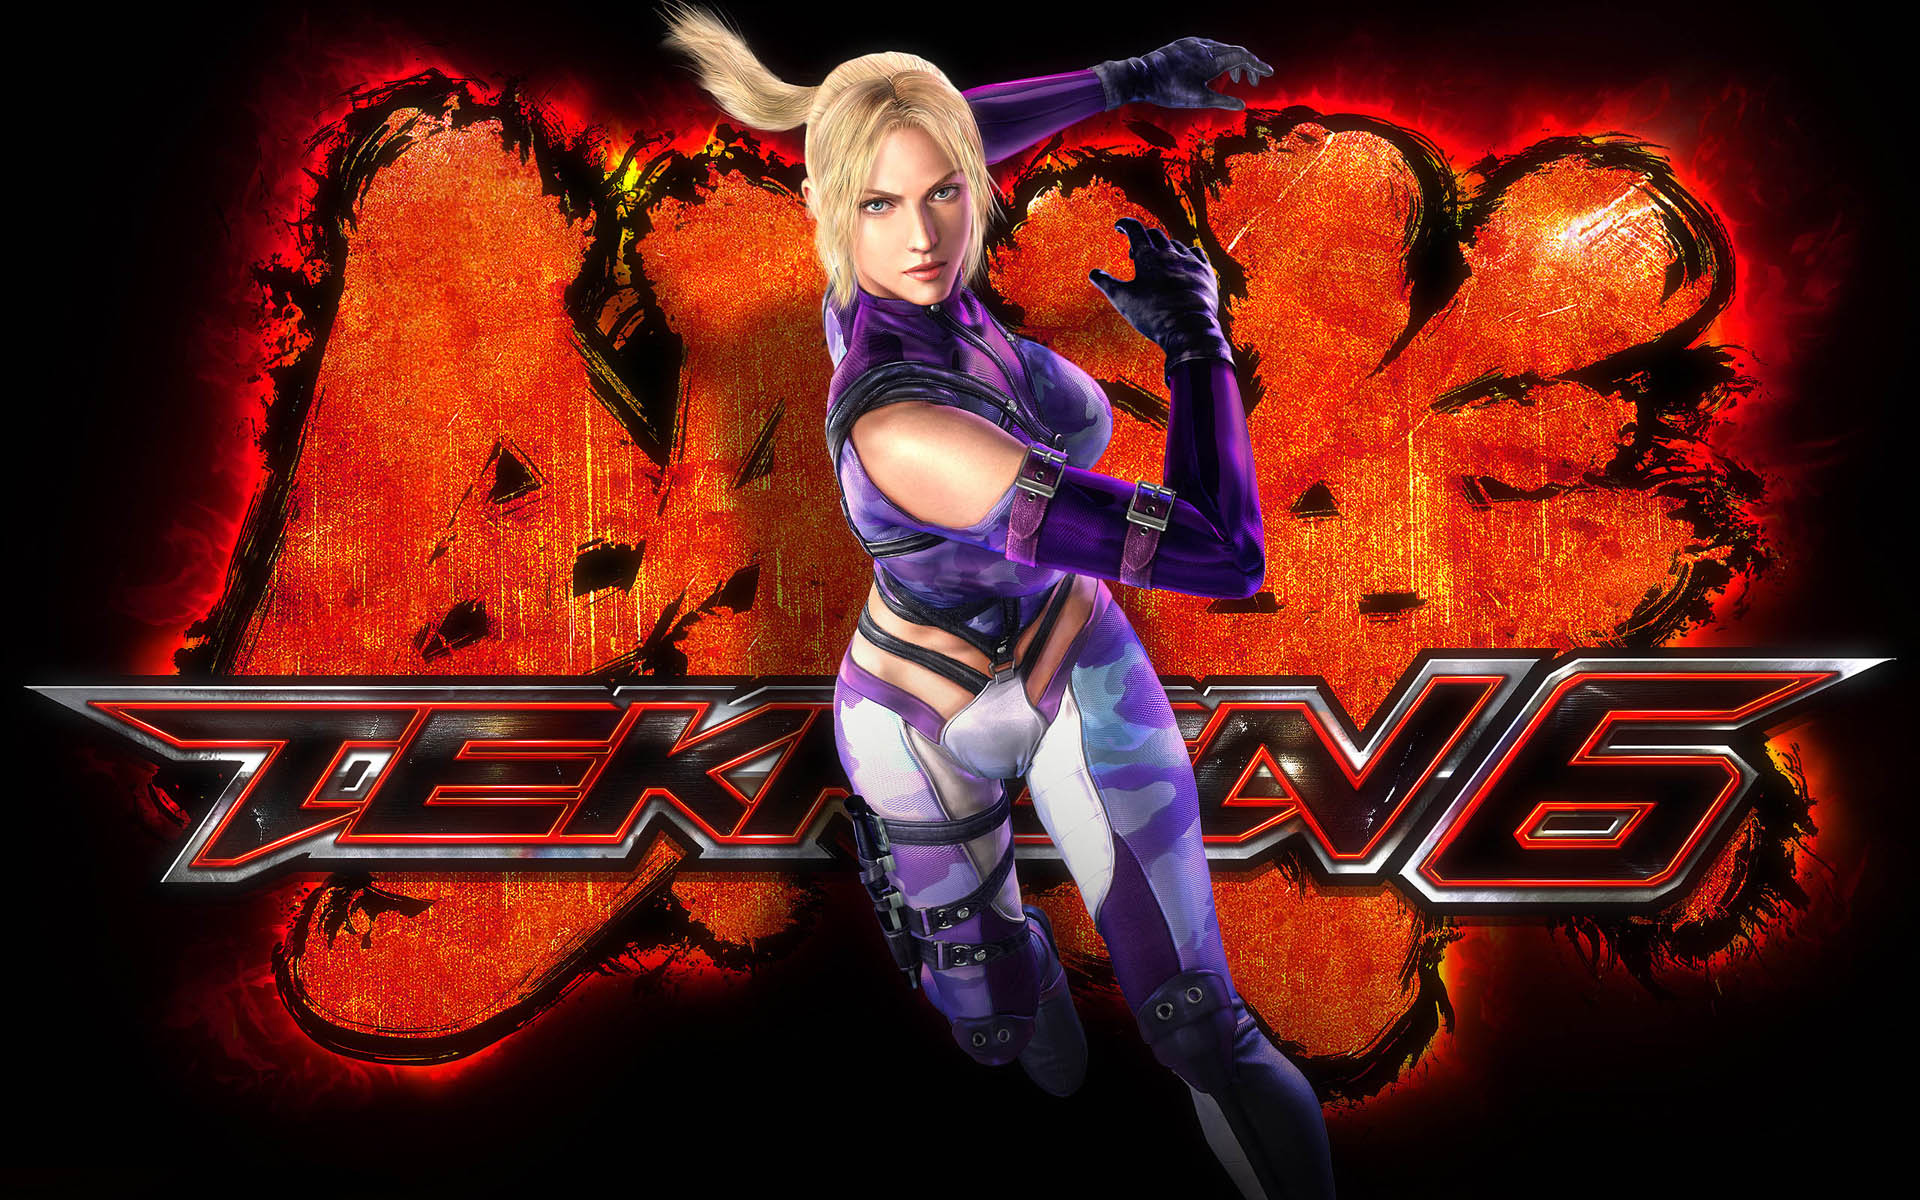 Nina Williams in Tekken 6